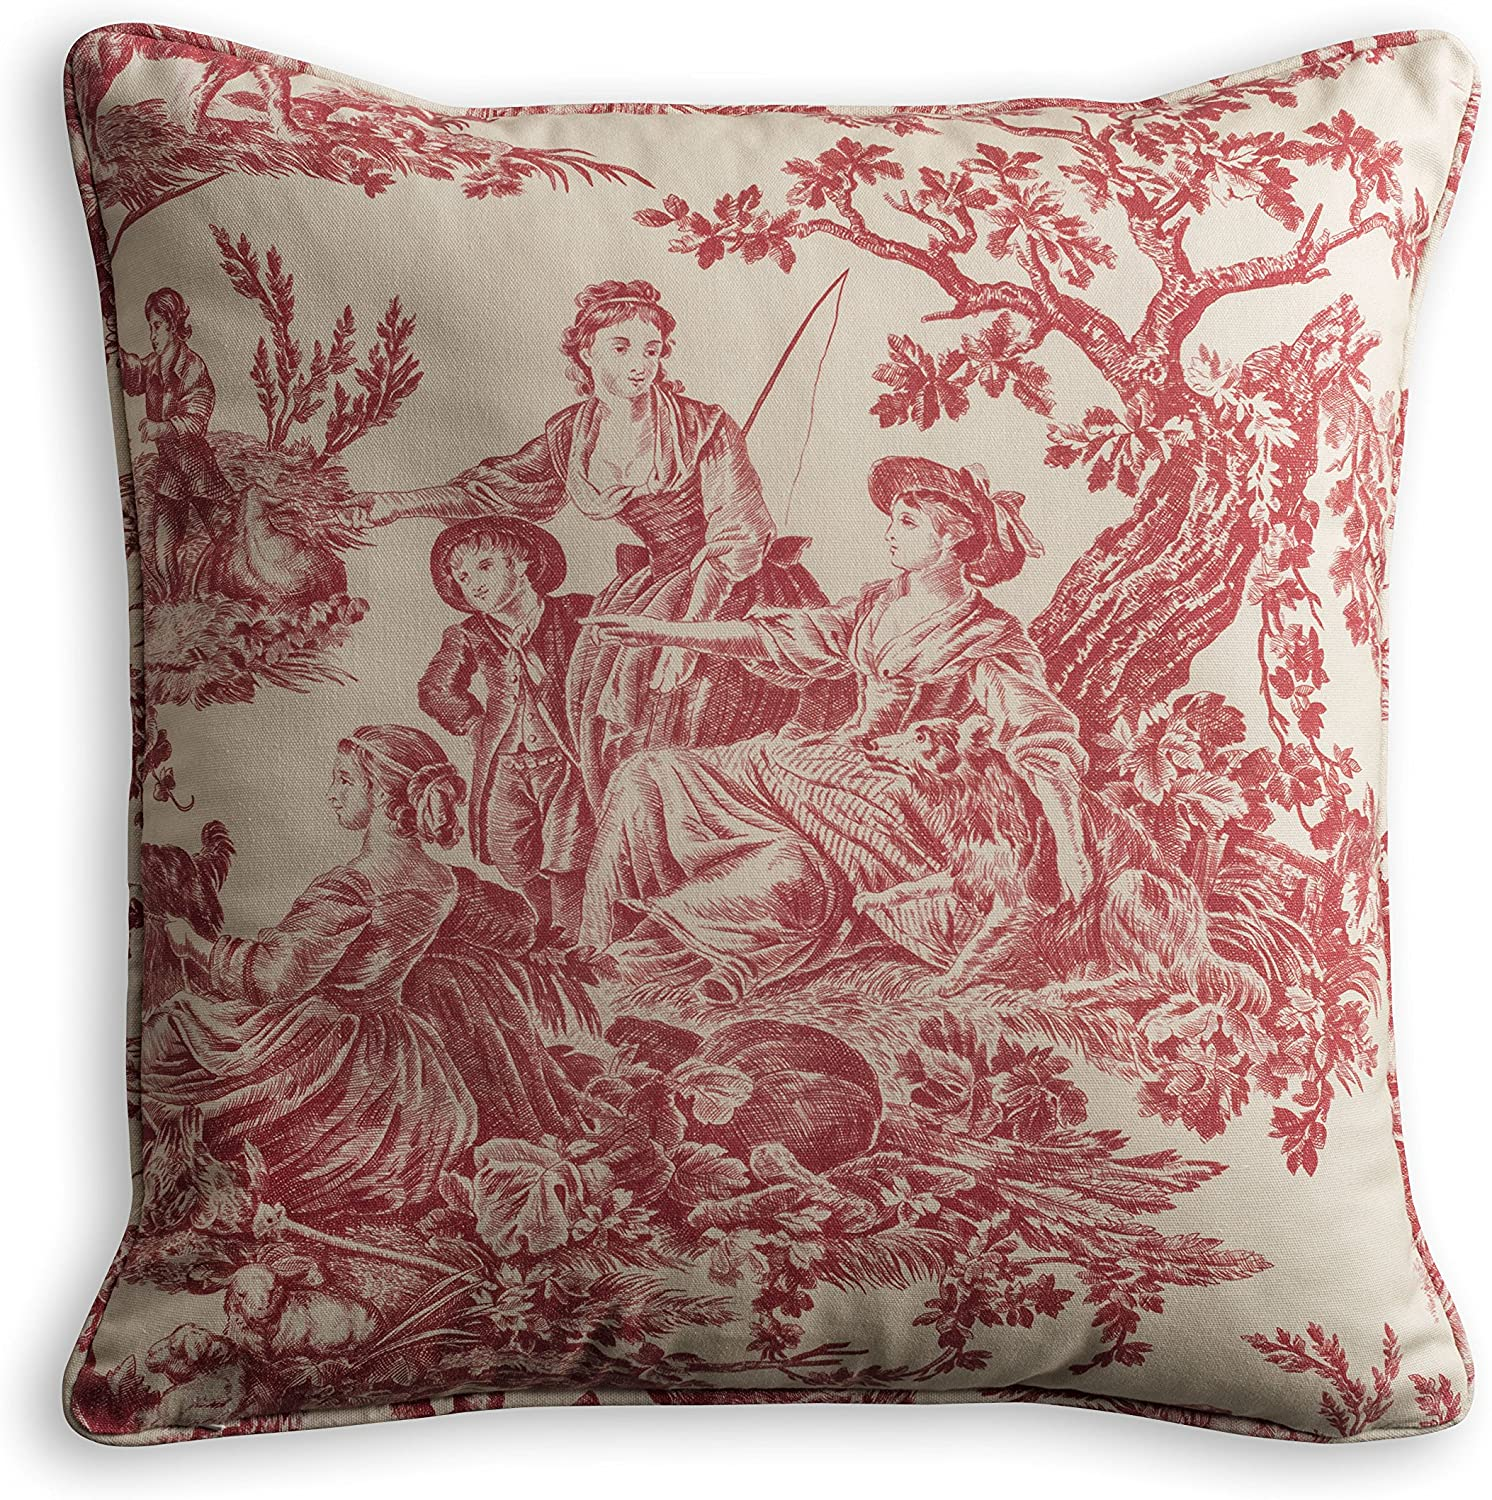 Maison d' Hermine The Miller 100% Cotton Toile Red Decorative Pillow Cover 18 Inch by 18 Inch